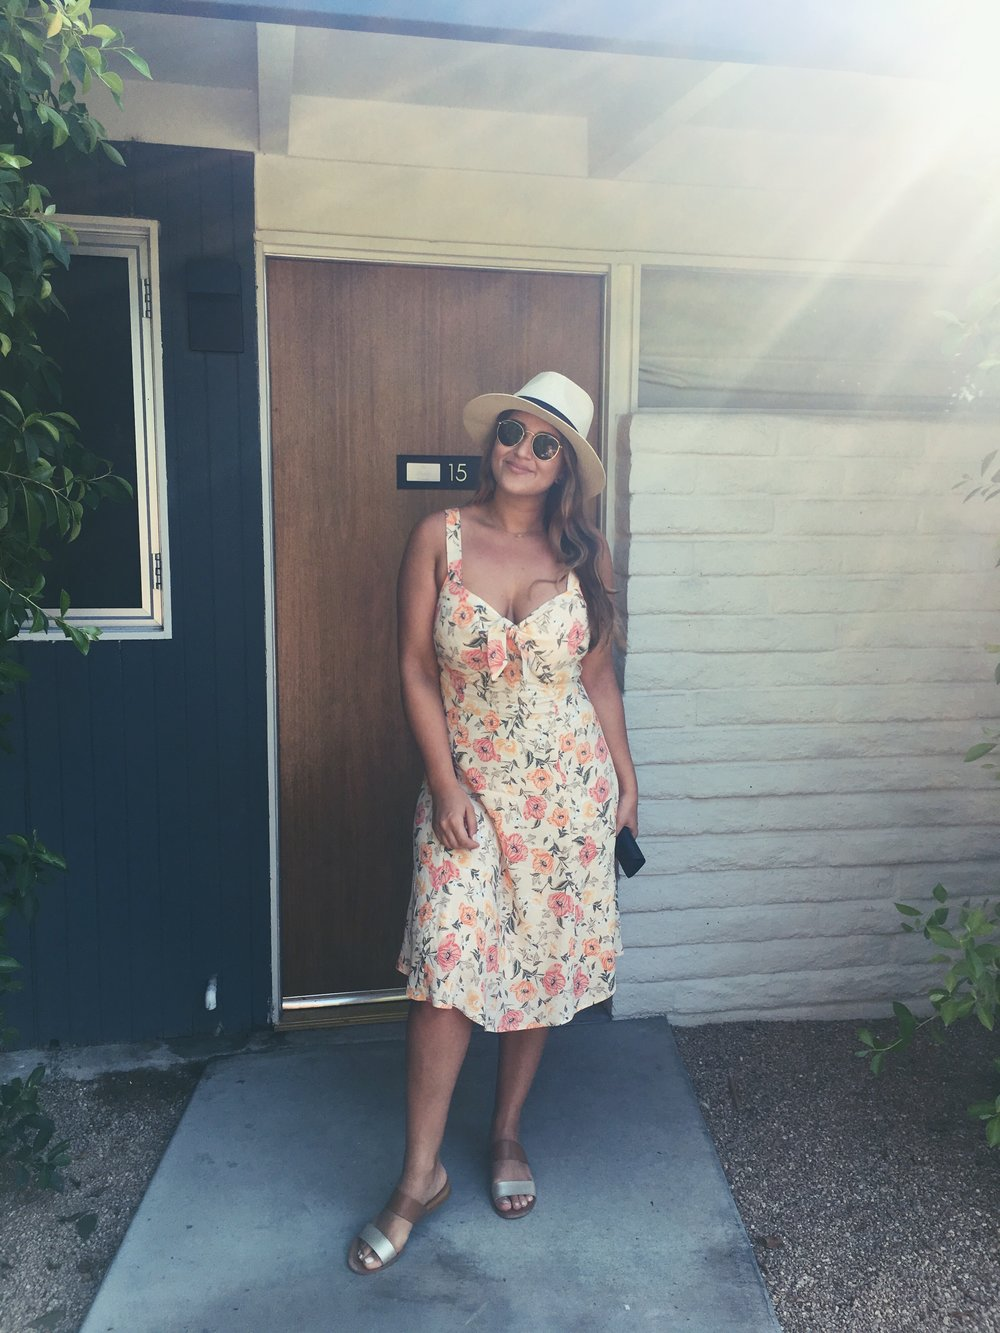 90-100 degree temps everyday means nothing but sundresses, sandals and lots of hats and sunnies